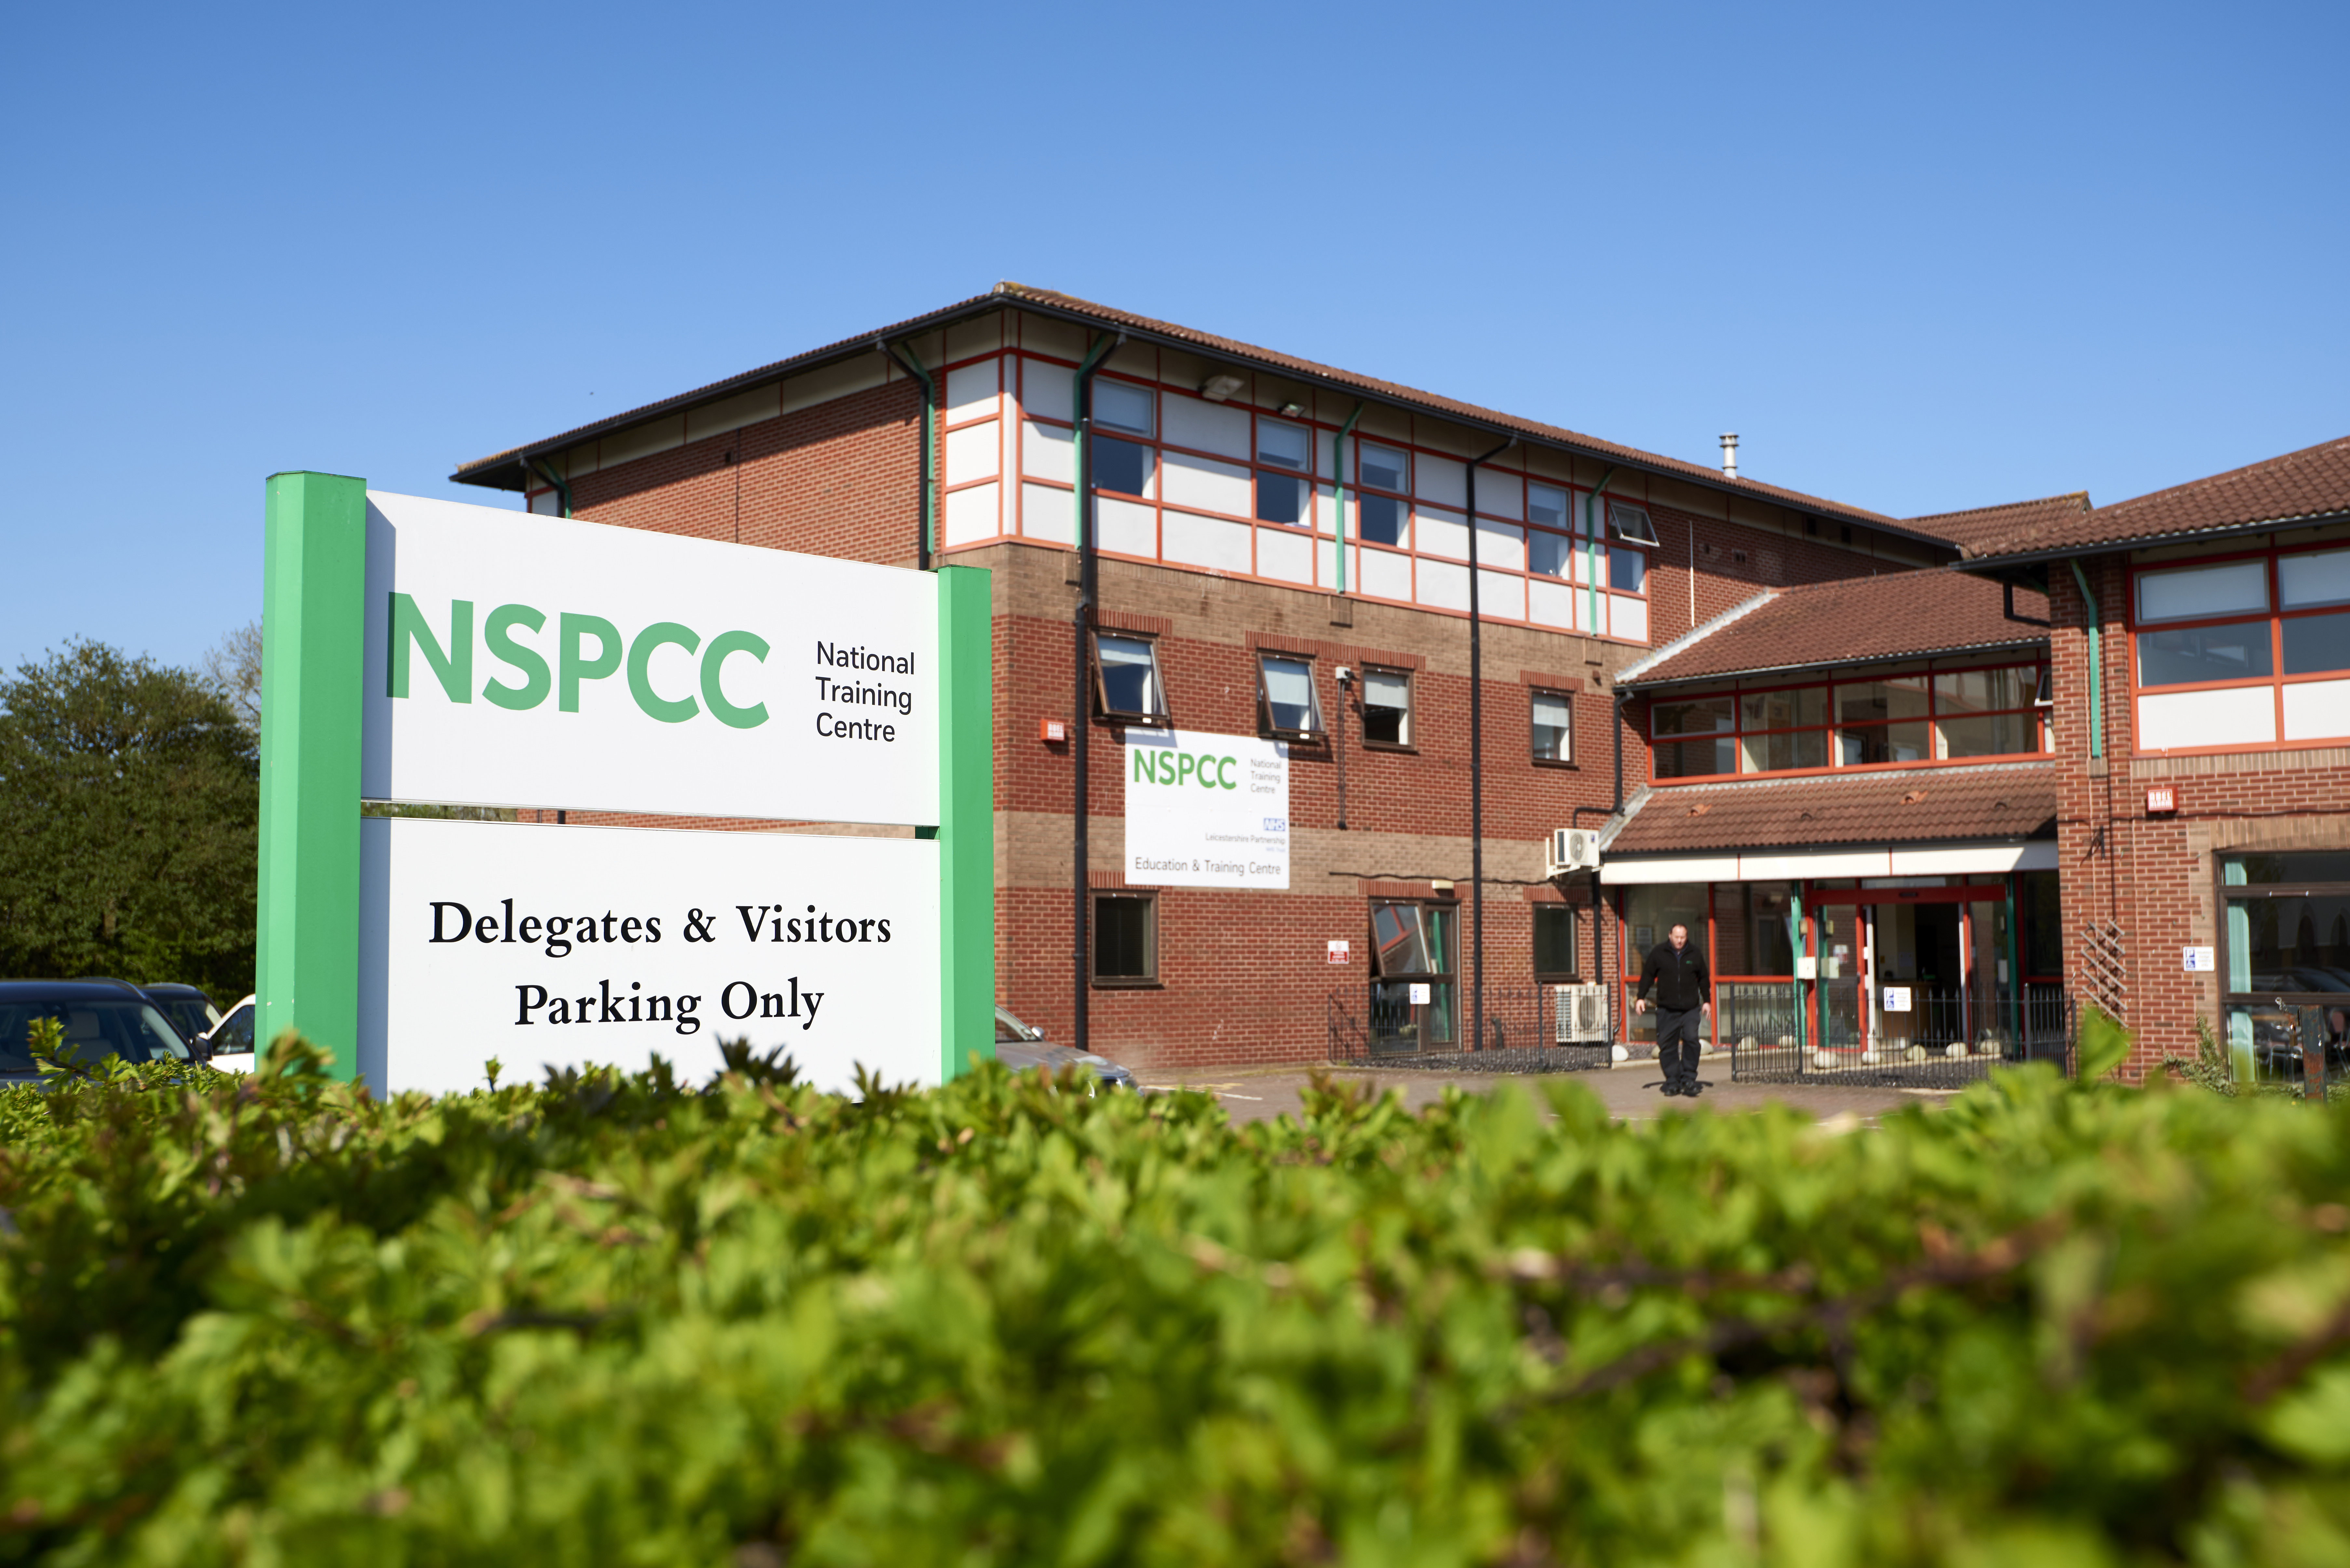 NSPCC National Training Centre